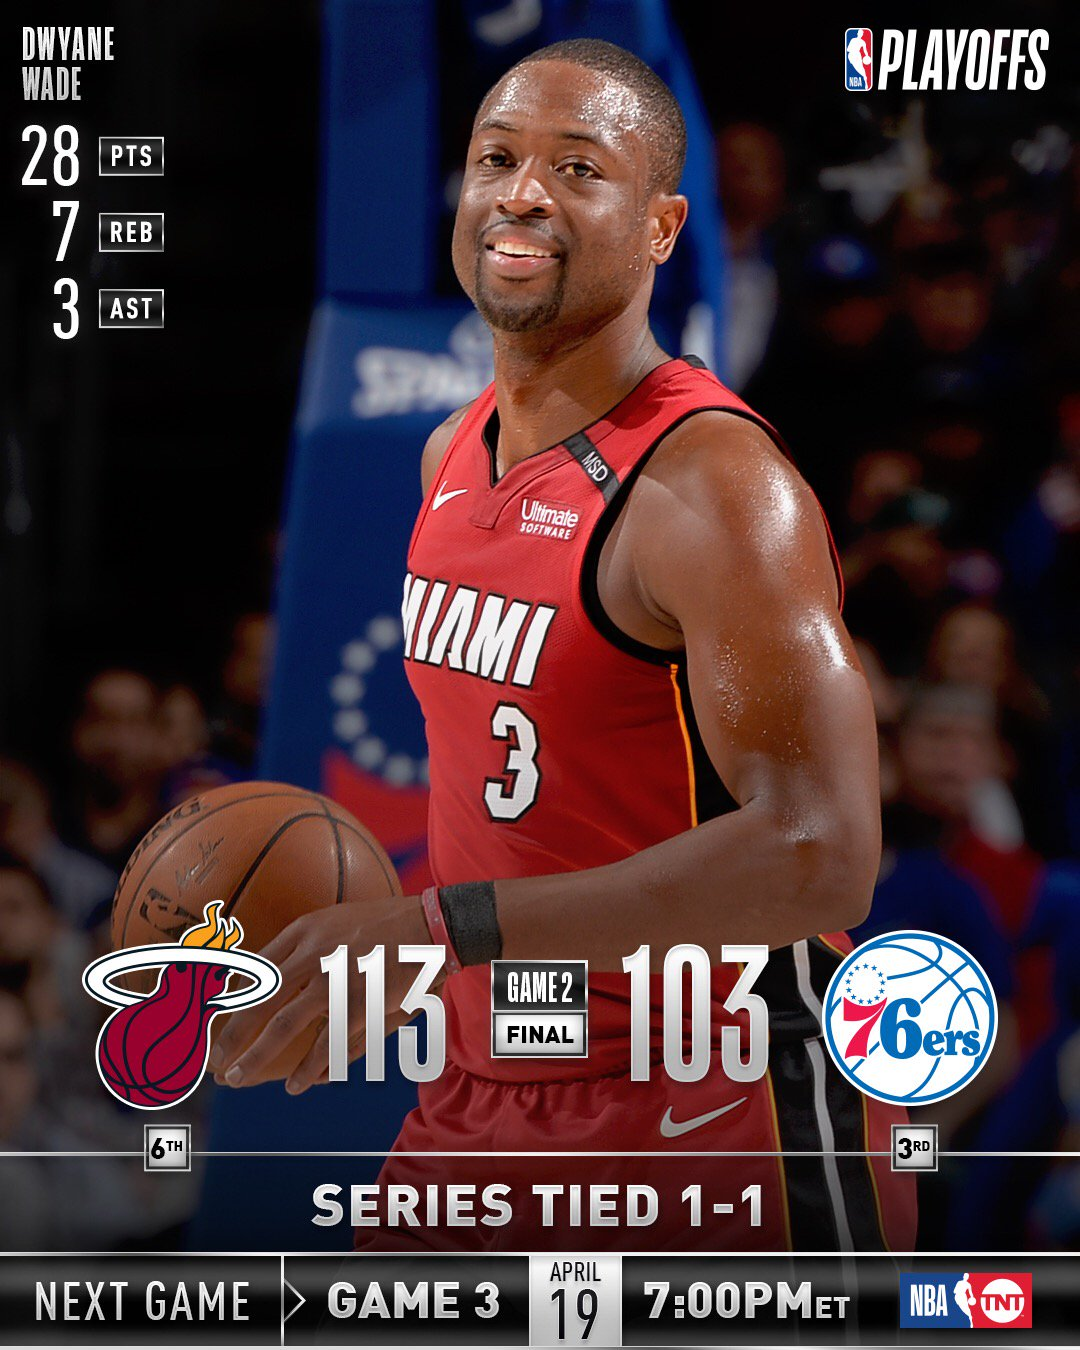 The @MiamiHEAT (1-1) and @warriors (2-0) are each victorious on Monday night! #NBAPlayoffs https://t.co/373FwxtAbF